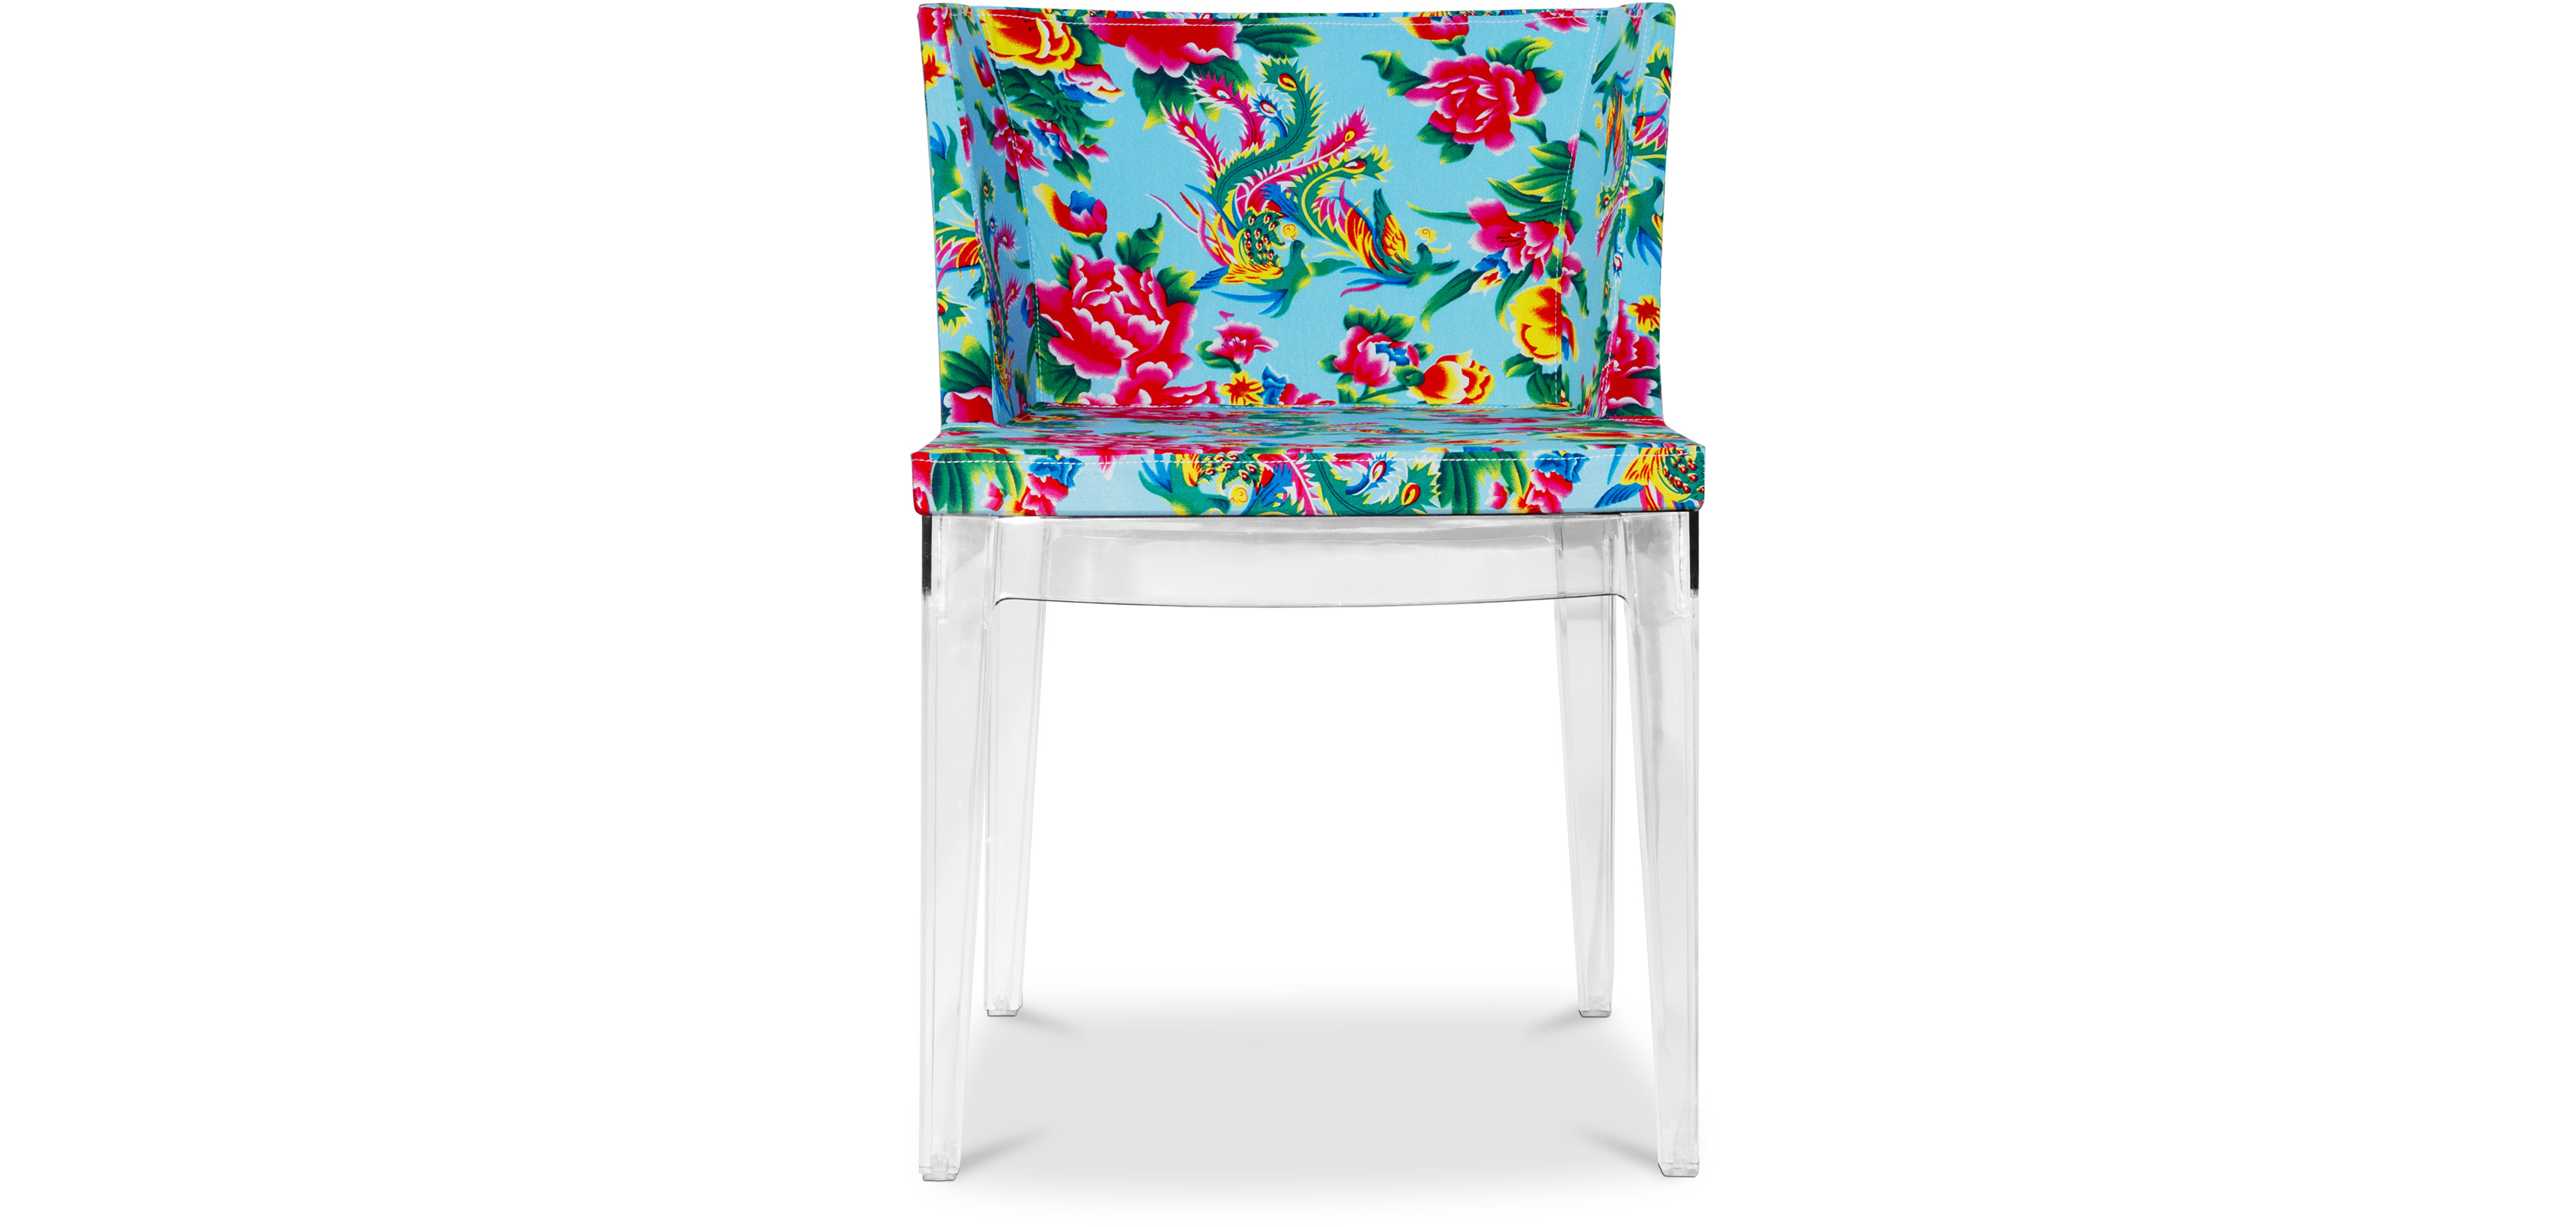 Plain Mademoiselle Chair Philippe S Style To Decor